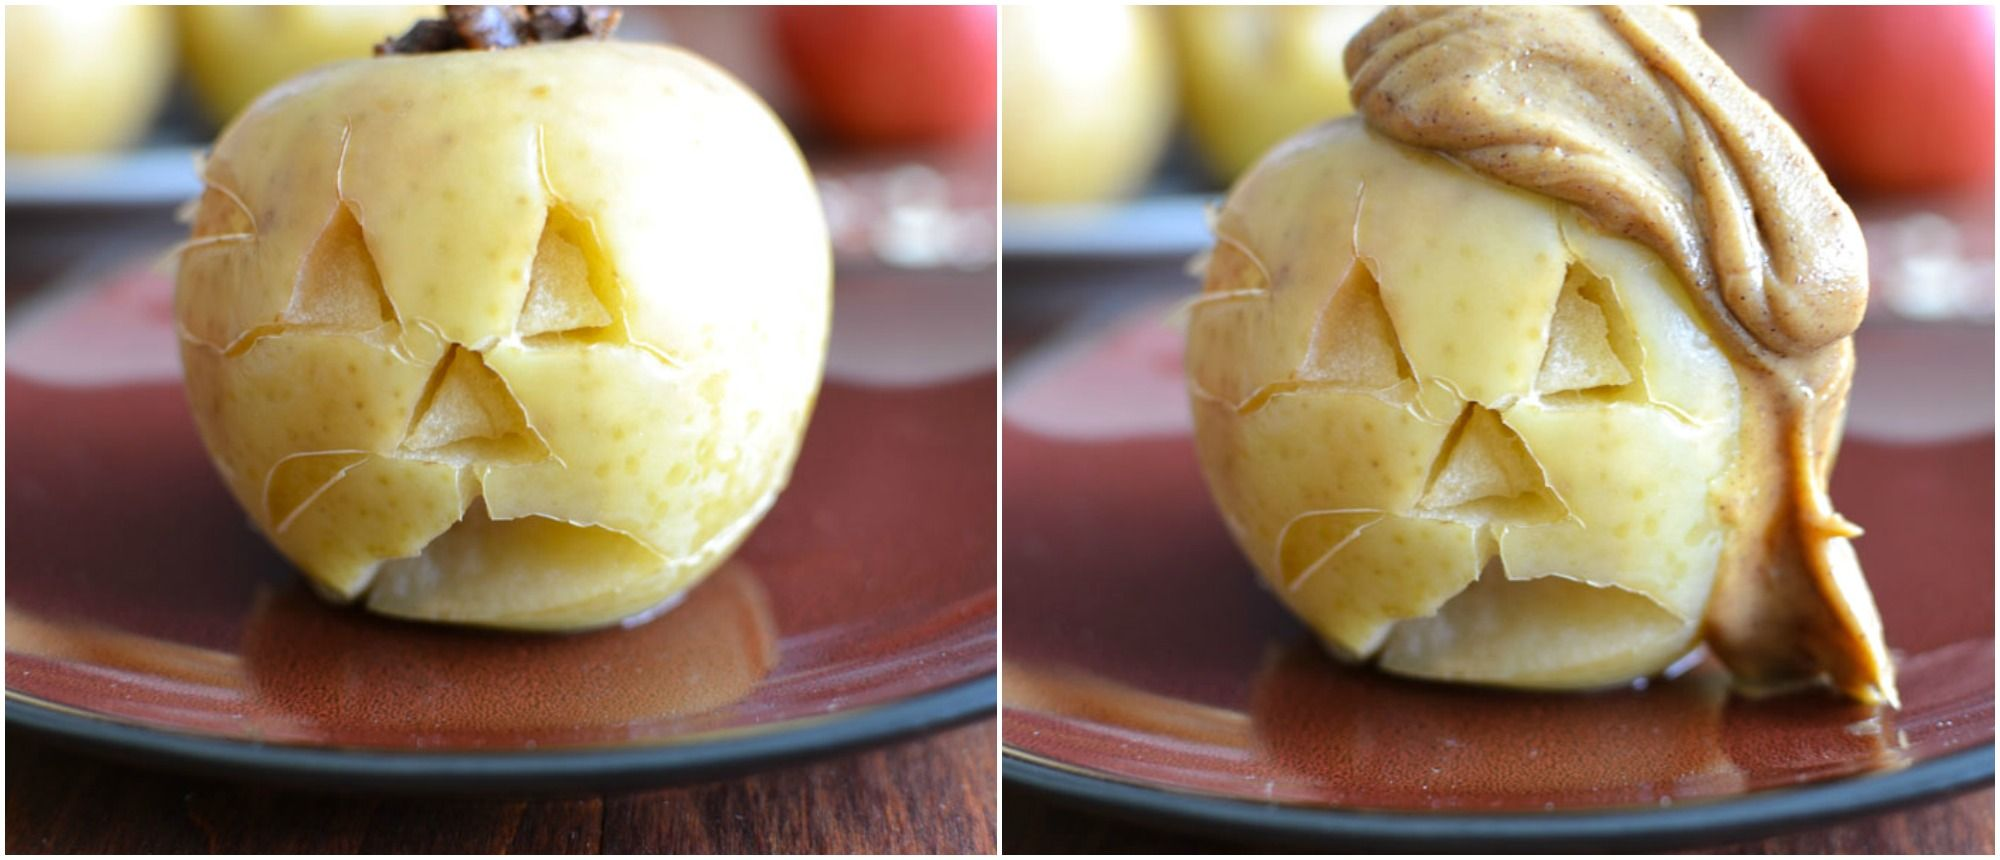 Slow-Cooker Pecan-Stuffed Apples with Cinnamon-Peanut Butter Sauce - The Foodie and The Fix